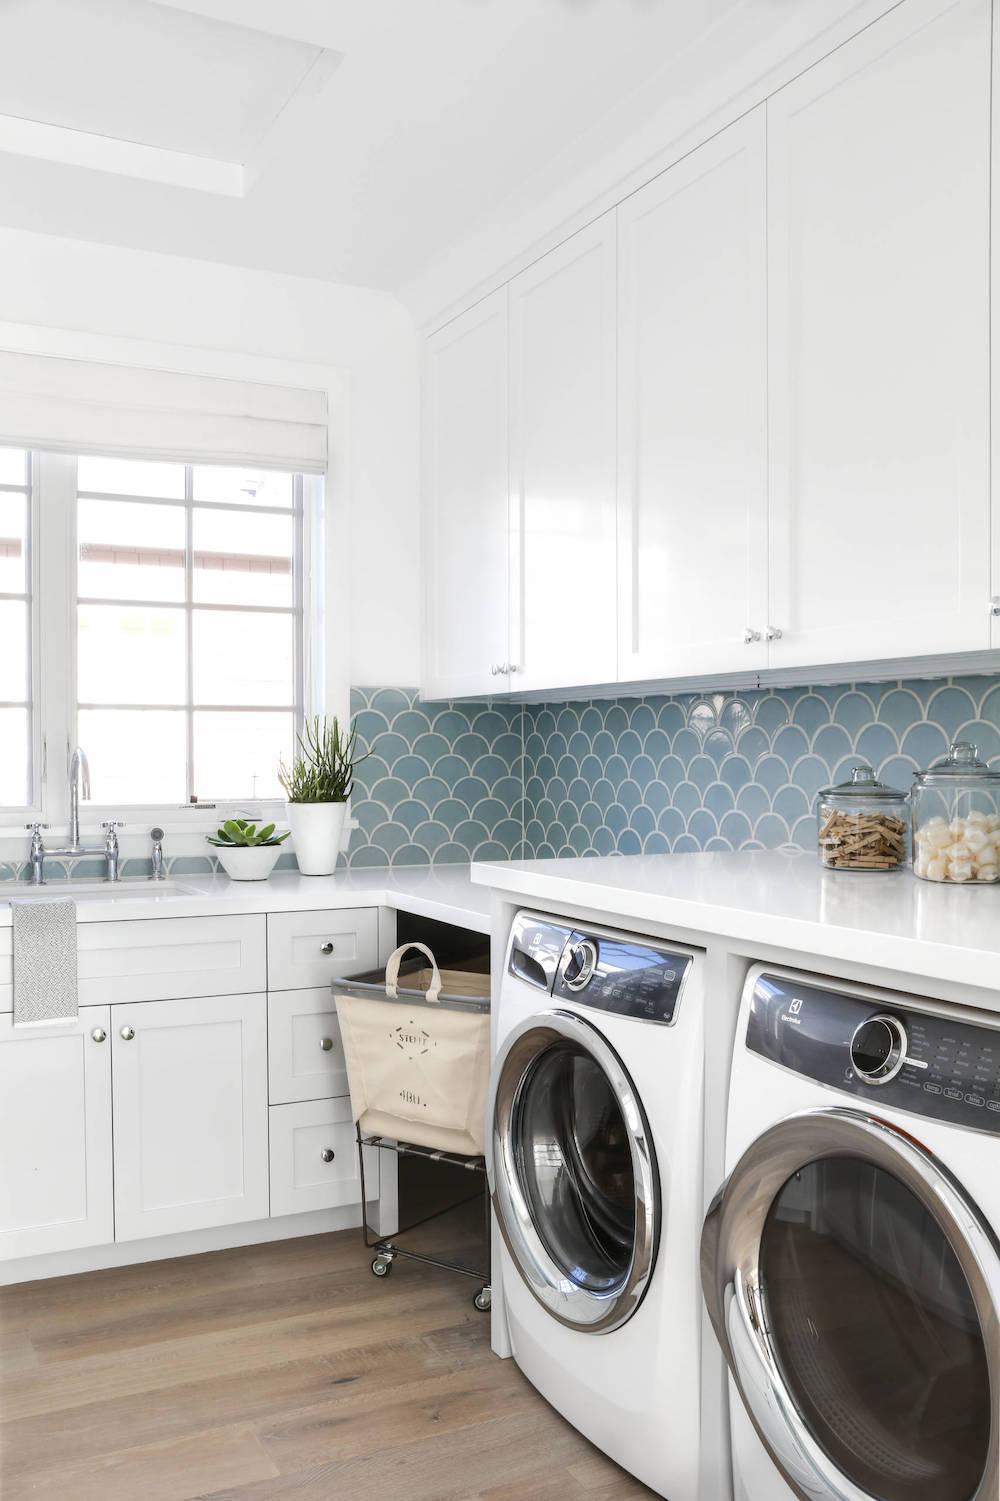 The Laundry Room Design Planning Guide